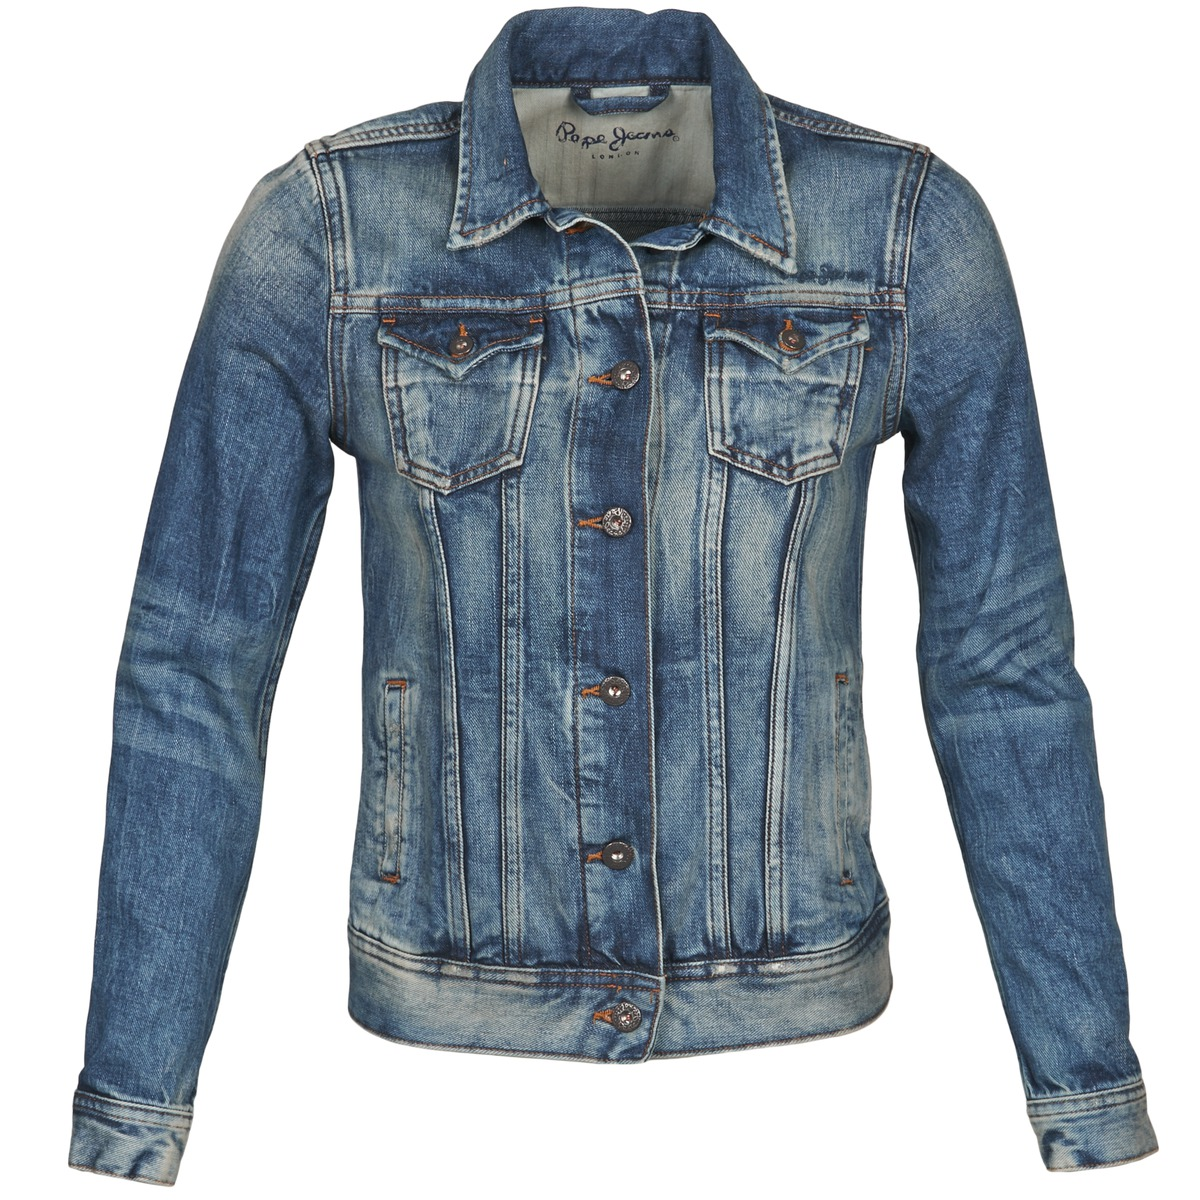 Denim jackets Pepe jeans THRIFT Blue - Free next day delivery with Spartoo.co.uk ! - Clothing Women £ 99.19